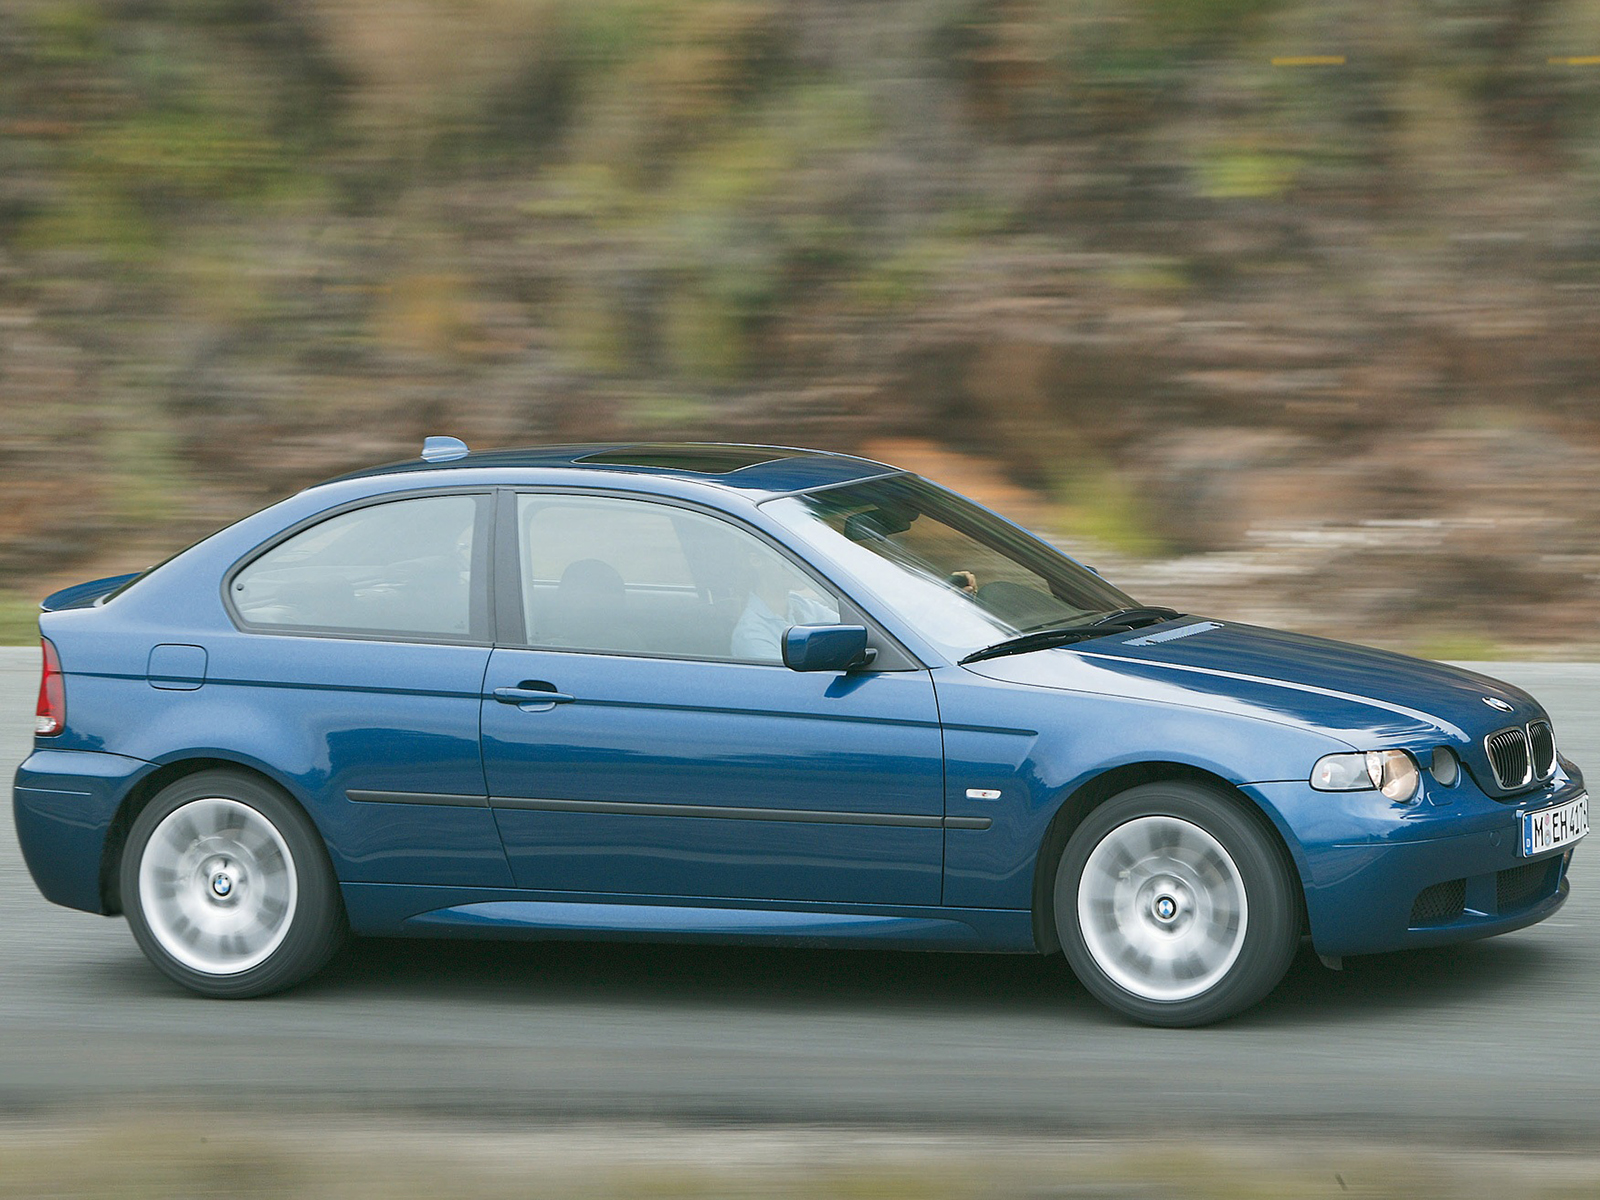 BMW 3 series 325ti 2001 photo - 2